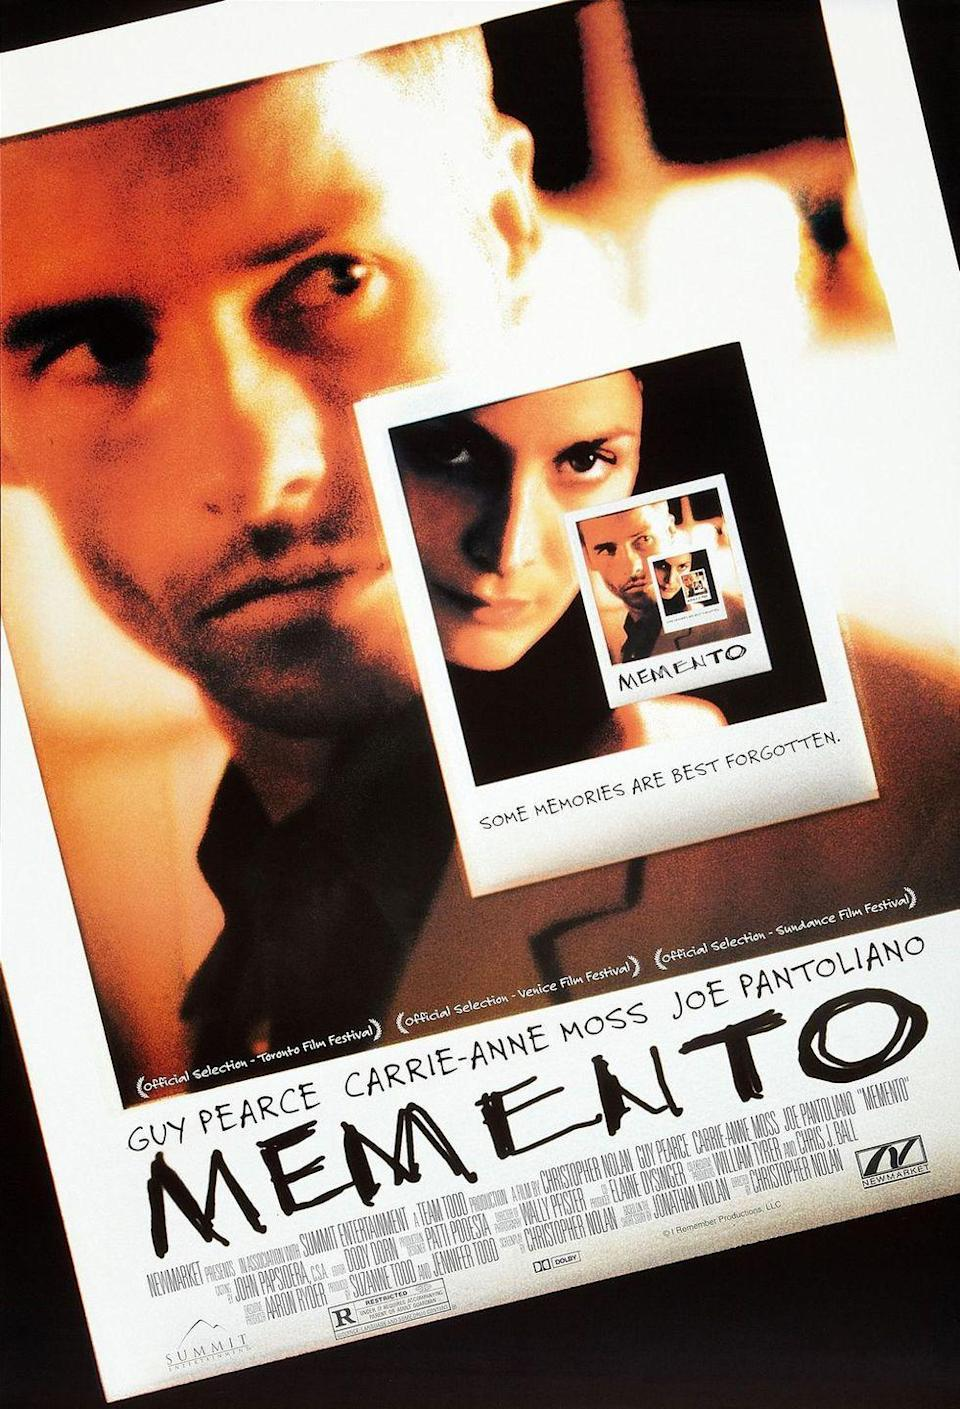 "<p>Can't resist a good mind-bending flick? Christopher Nolan's <em>Memento</em> is a must-watch, not only for its gripping mystery but for its truly innovative plot involving a man with short-term memory loss (Guy Pearce) who attempts to track down his wife's killer. <br></p><p><a class=""link rapid-noclick-resp"" href=""https://www.amazon.com/Memento-Guy-Pearce/dp/B0763T3HC6?tag=syn-yahoo-20&ascsubtag=%5Bartid%7C10055.g.34396232%5Bsrc%7Cyahoo-us"" rel=""nofollow noopener"" target=""_blank"" data-ylk=""slk:WATCH ON AMAZON"">WATCH ON AMAZON</a></p>"